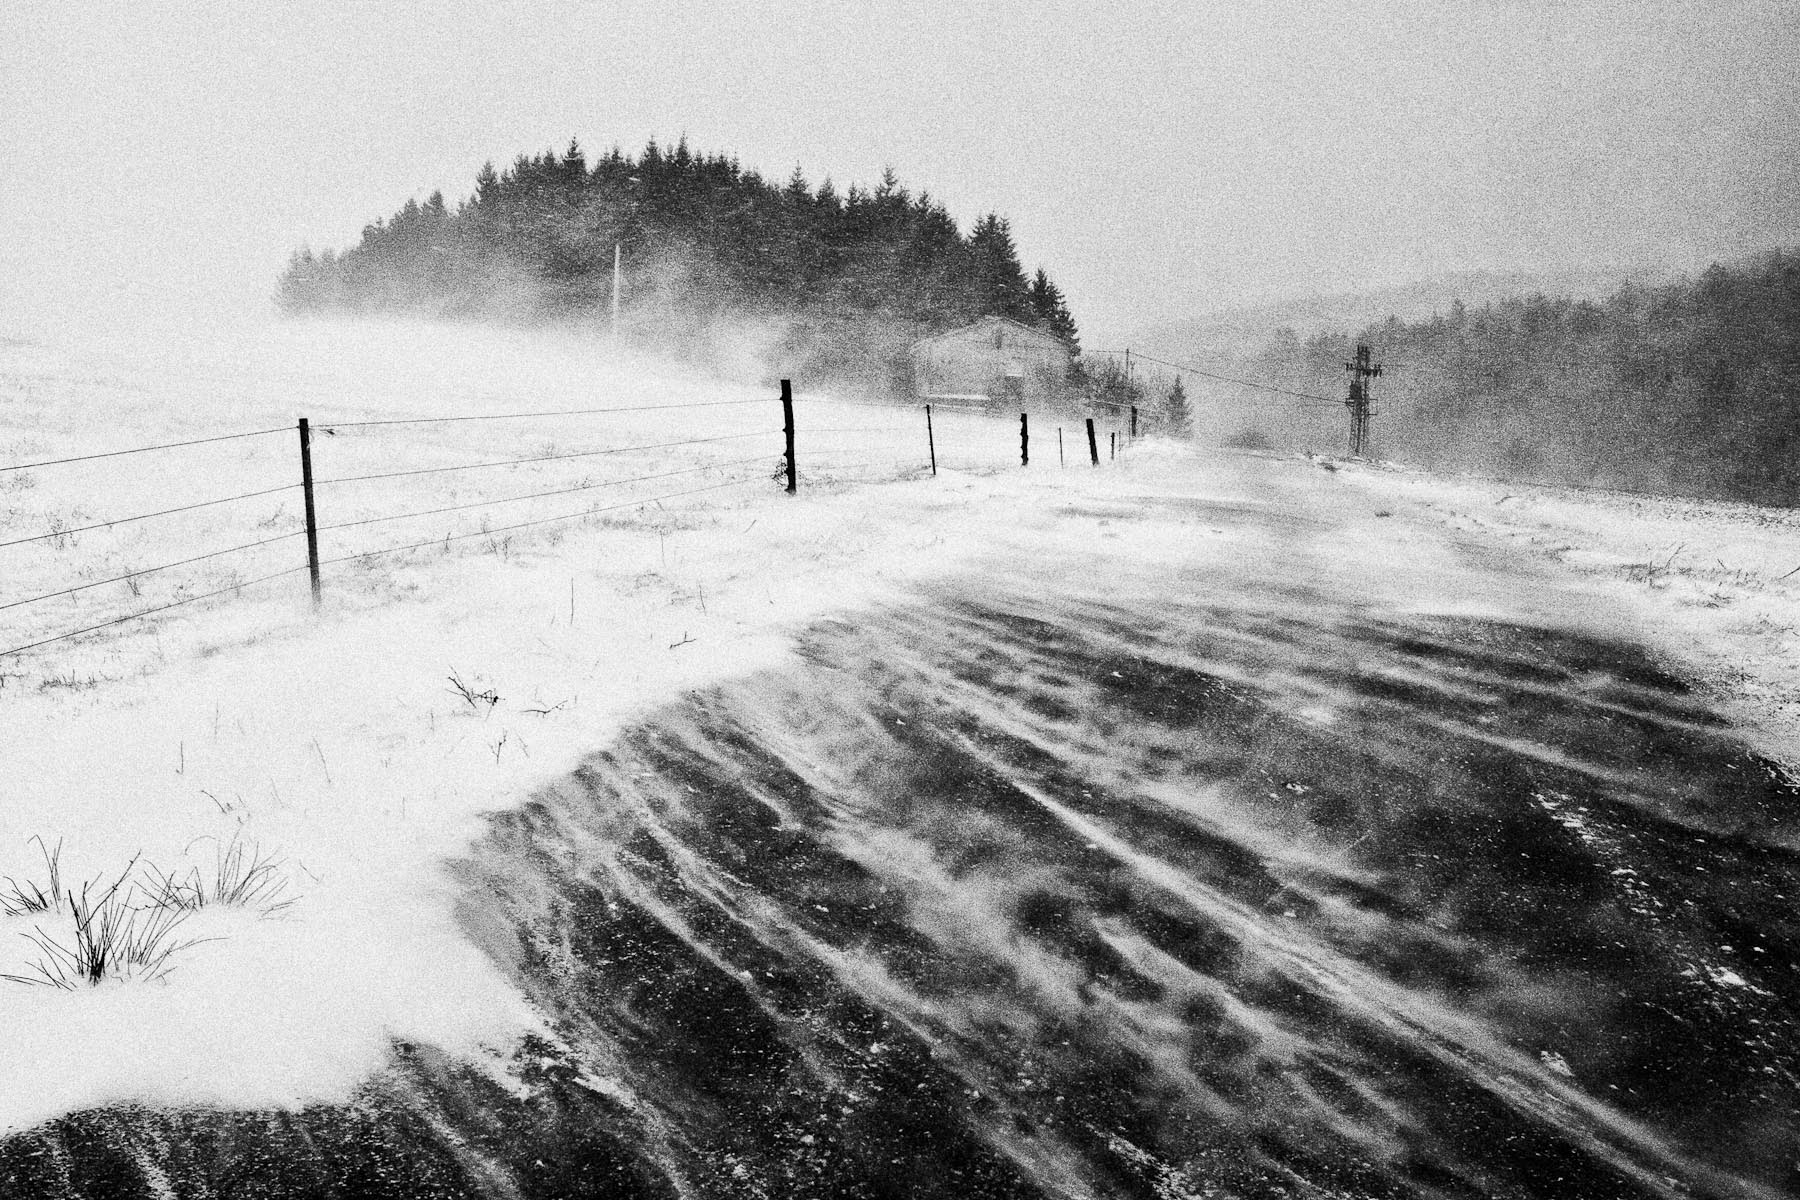 Extreme bora wind gusts at more than 130 kmph in Razdrto, Slovenia, on 10th March 2010. The Bora is a common gusty wind in the littoral regions of Slovenia. A large cyclone that moved through Europe in March caused its highest windspeeds on record, snowdrifts, closed roads and plenty of damage.